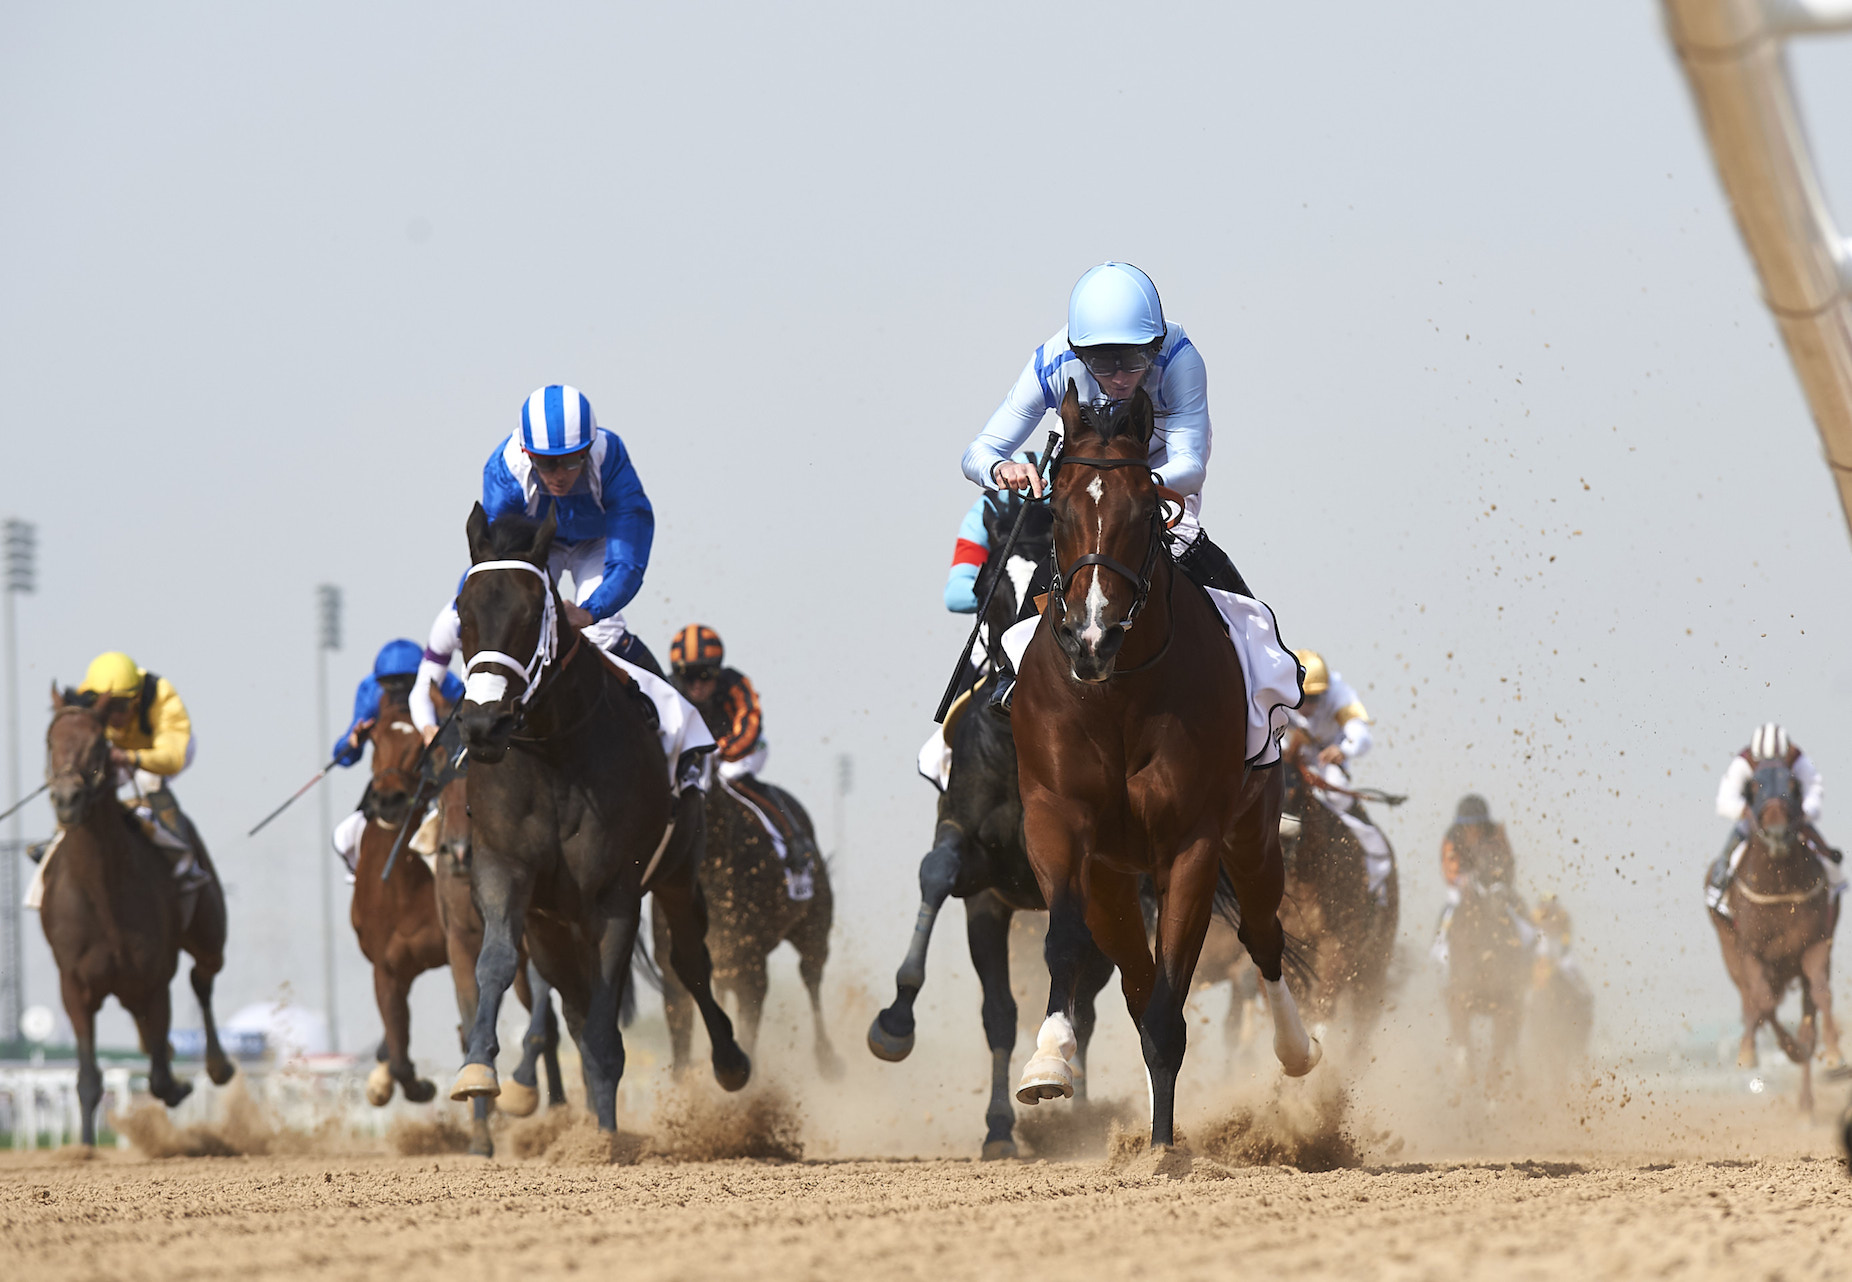 Ryan Moore (pale blue cap) took Heavy Metal into the lead soon after the gate opened in the Godolphin Mile, stuck to the inside and never looked like being beaten. Photo: Dubai Racing Club/Andrew Watkins